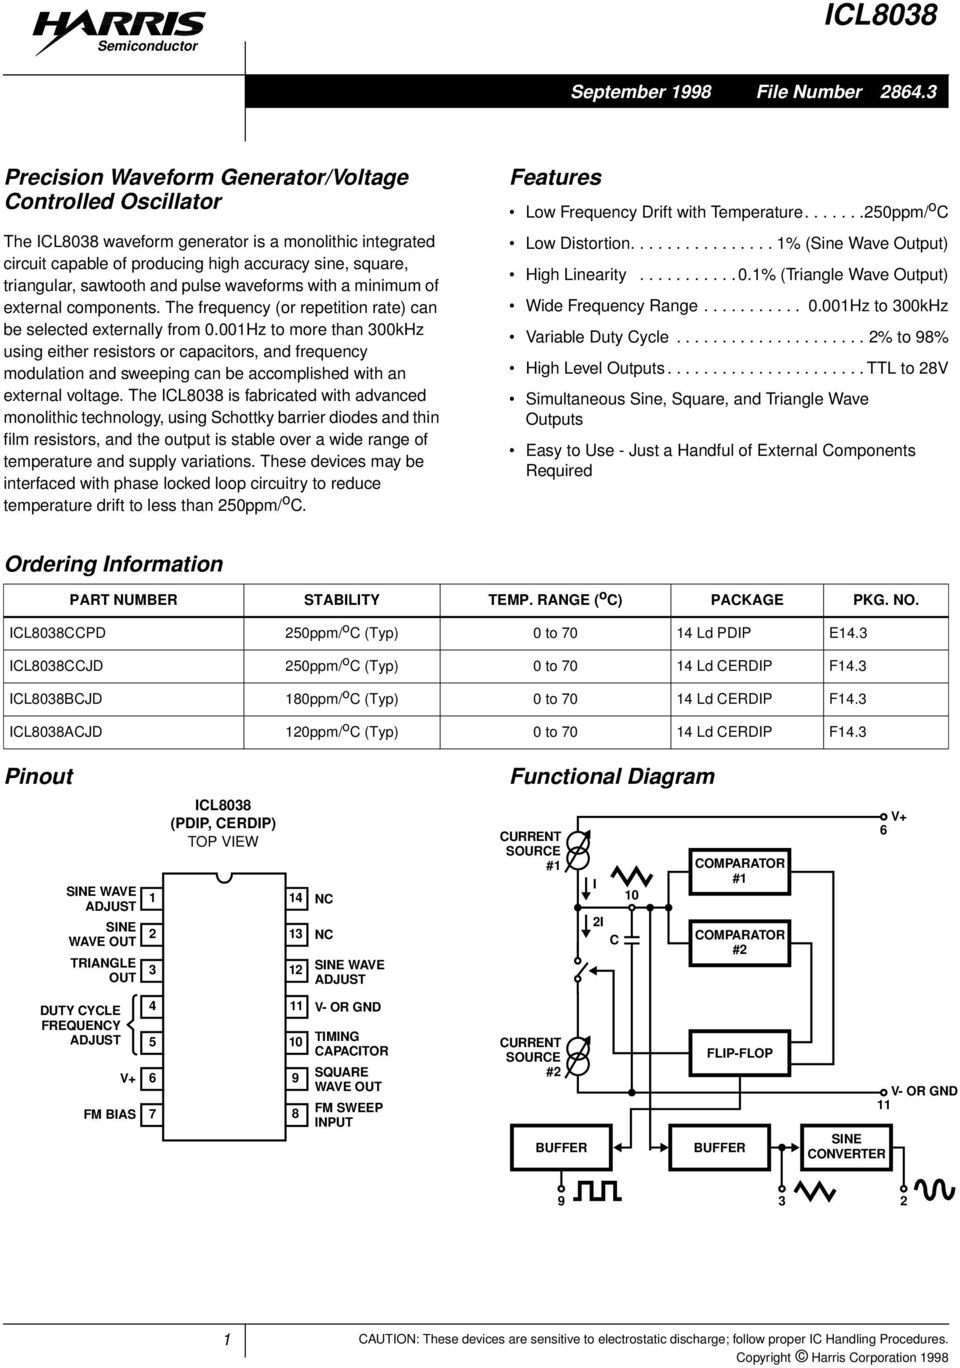 Icl8038 Features Precision Waveform Generator Voltage Controlled National Lm555 Datasheet Replacement For Se555 Ne555 Series And The Connection Diagram Waveforms With A Minimum Of External Components Frequency Or Repetition Rate Can